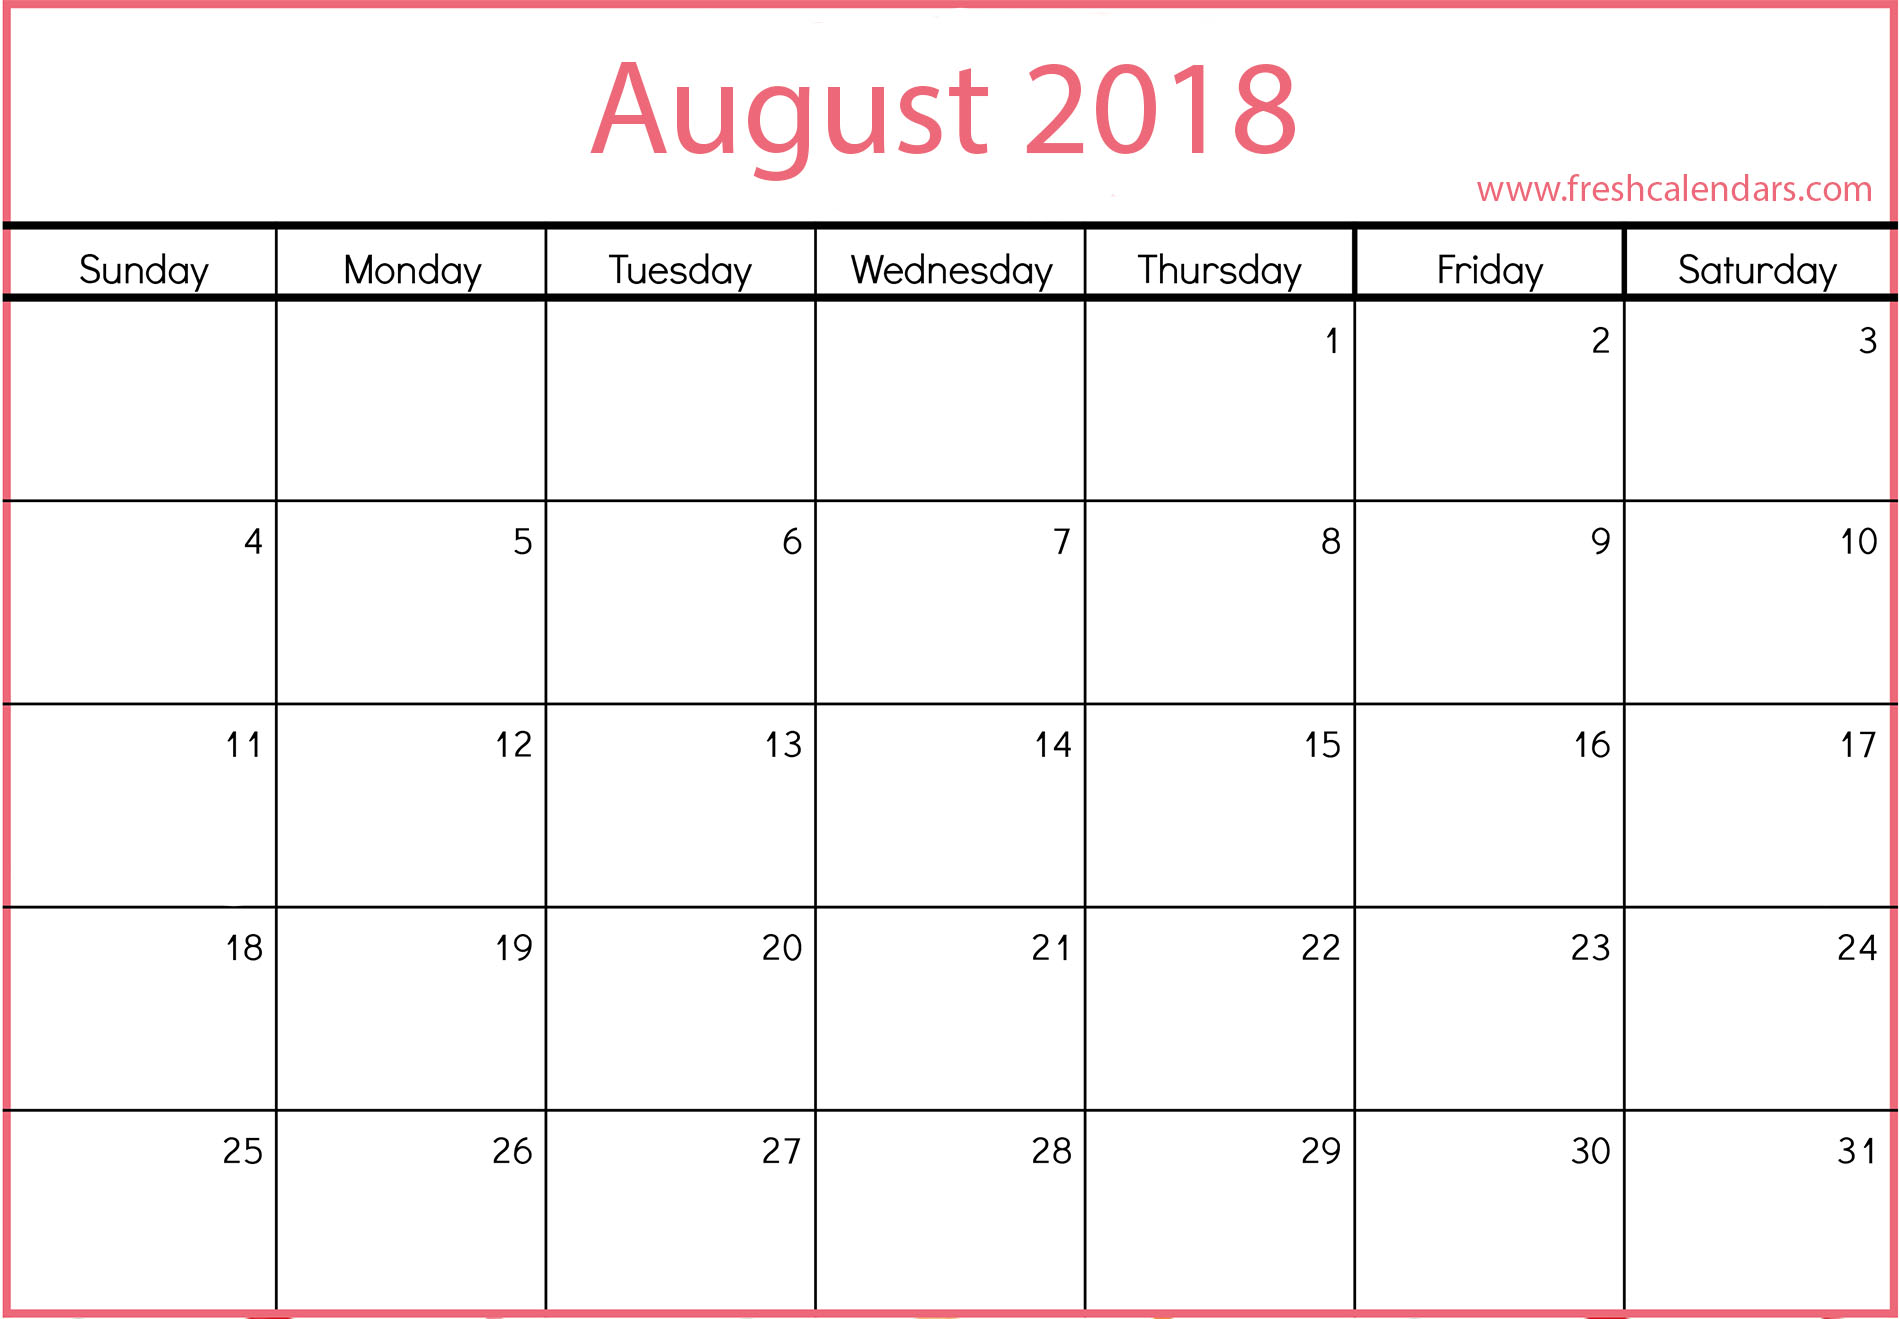 photo relating to Printable August Calendar named August 2019 Calendar Printable - New Calendars